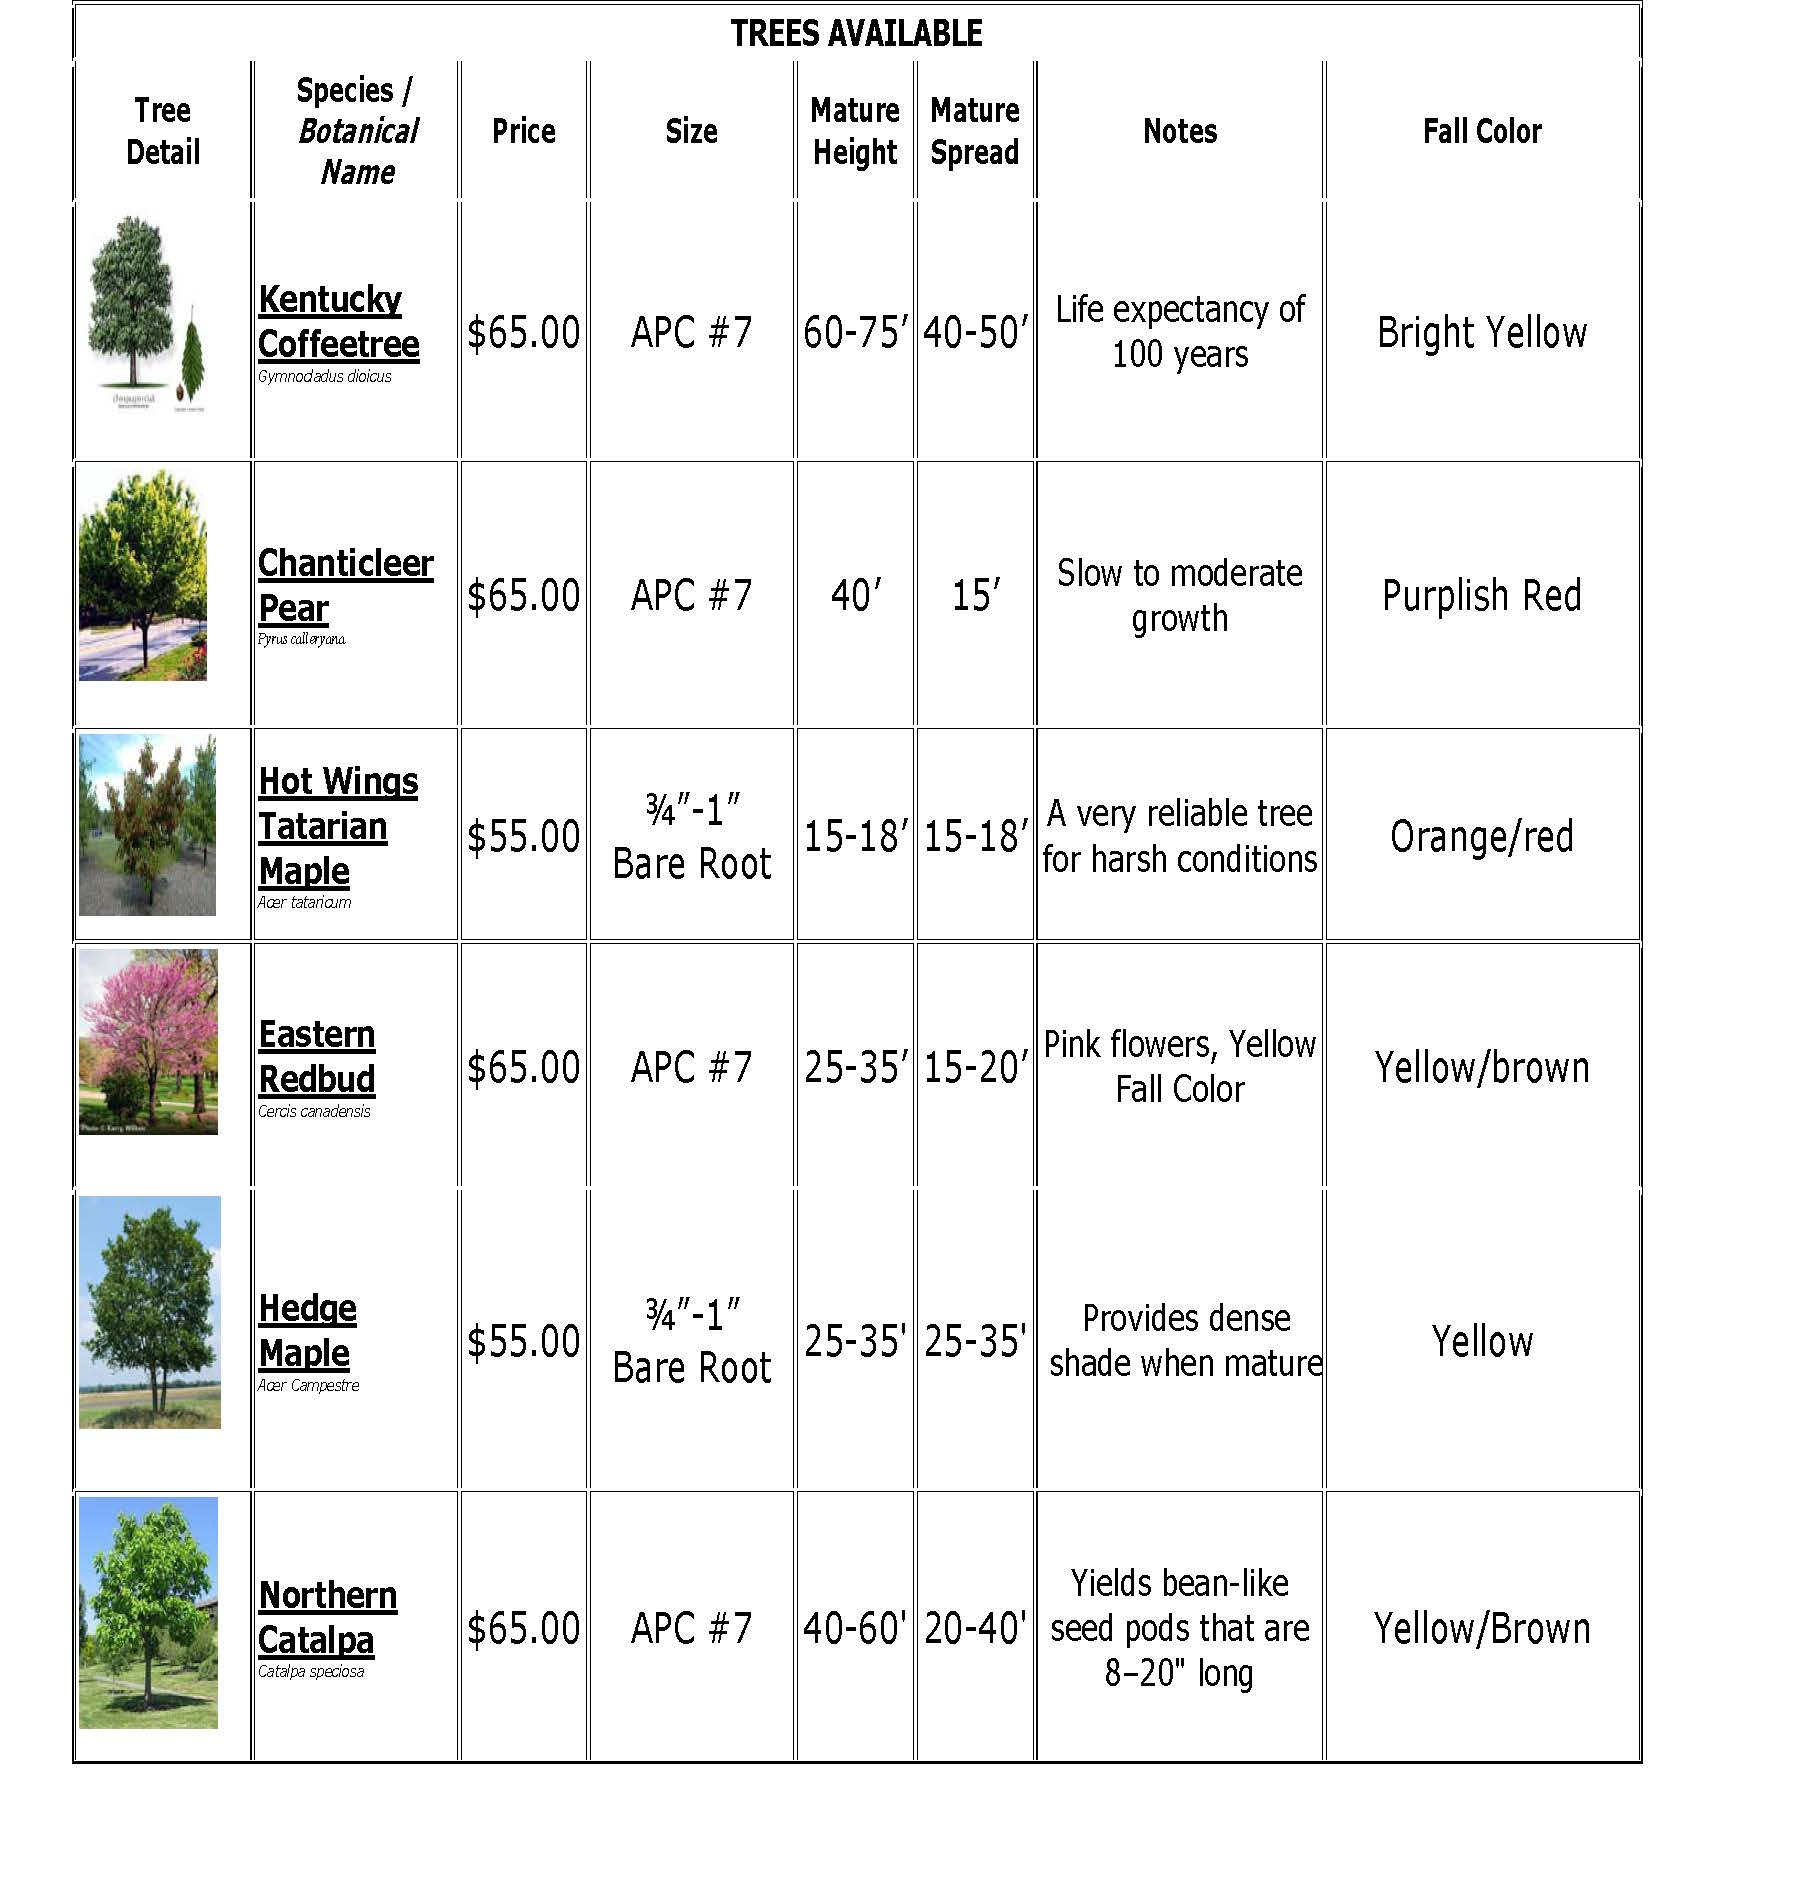 2018 Tree Descriptions Page 1 of 2